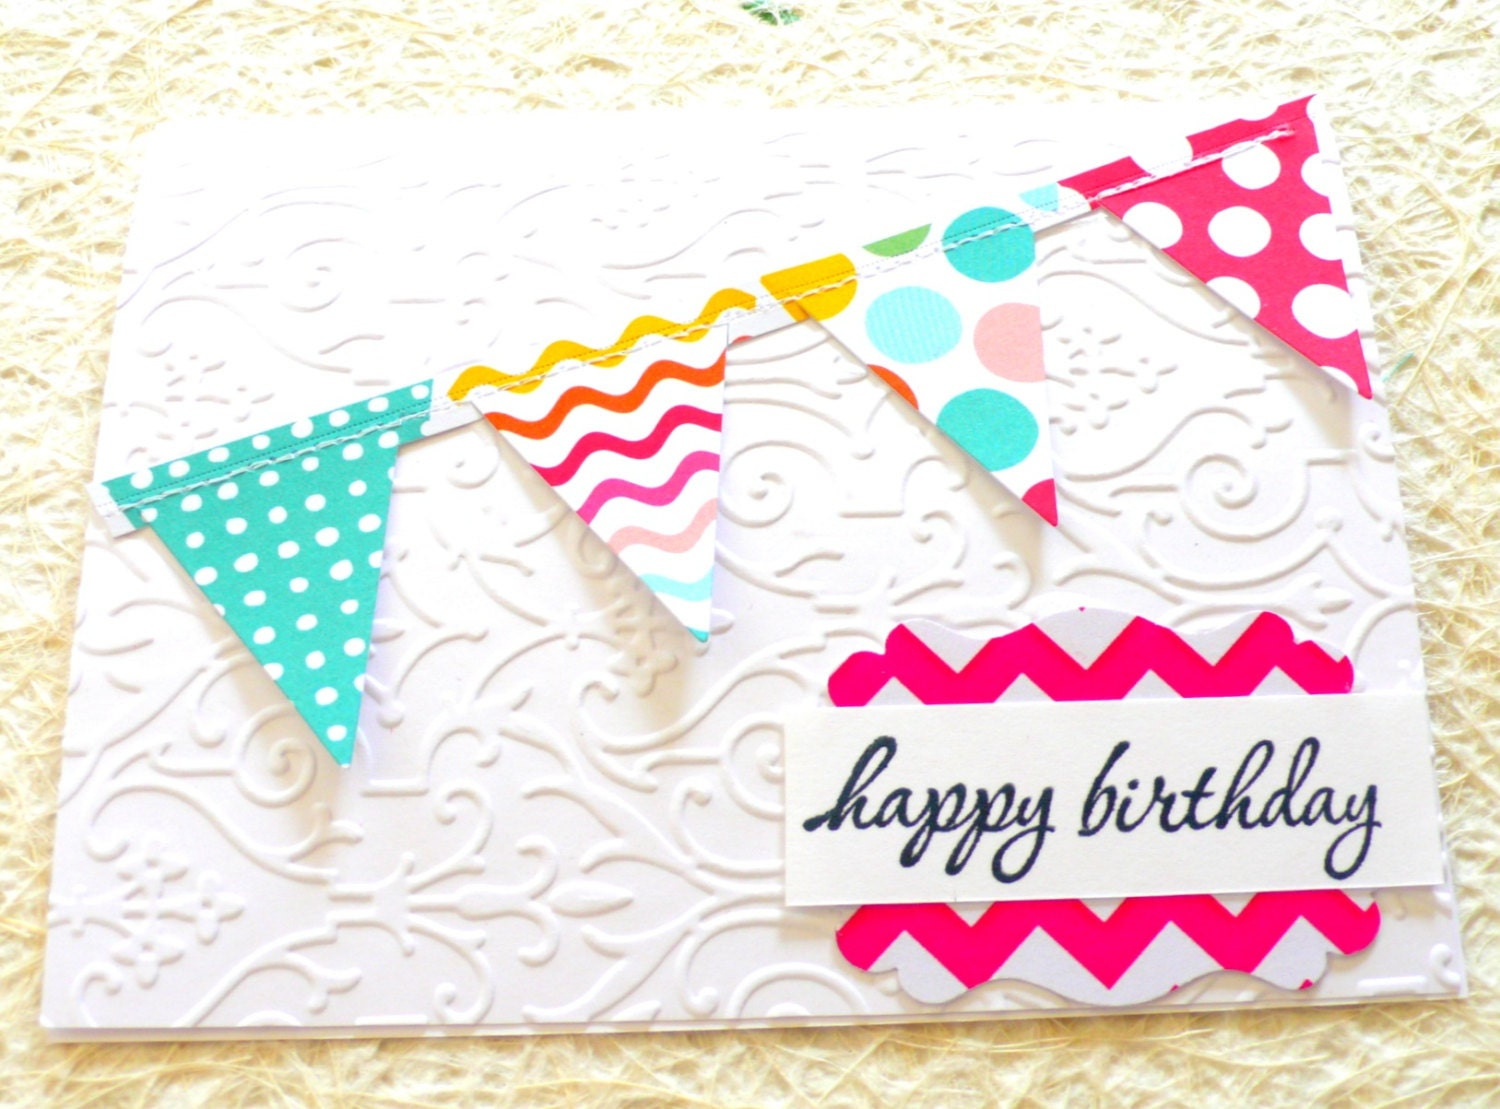 Friend Birthday Card Best Friend birthday card Happy – Best Friend Birthday Card